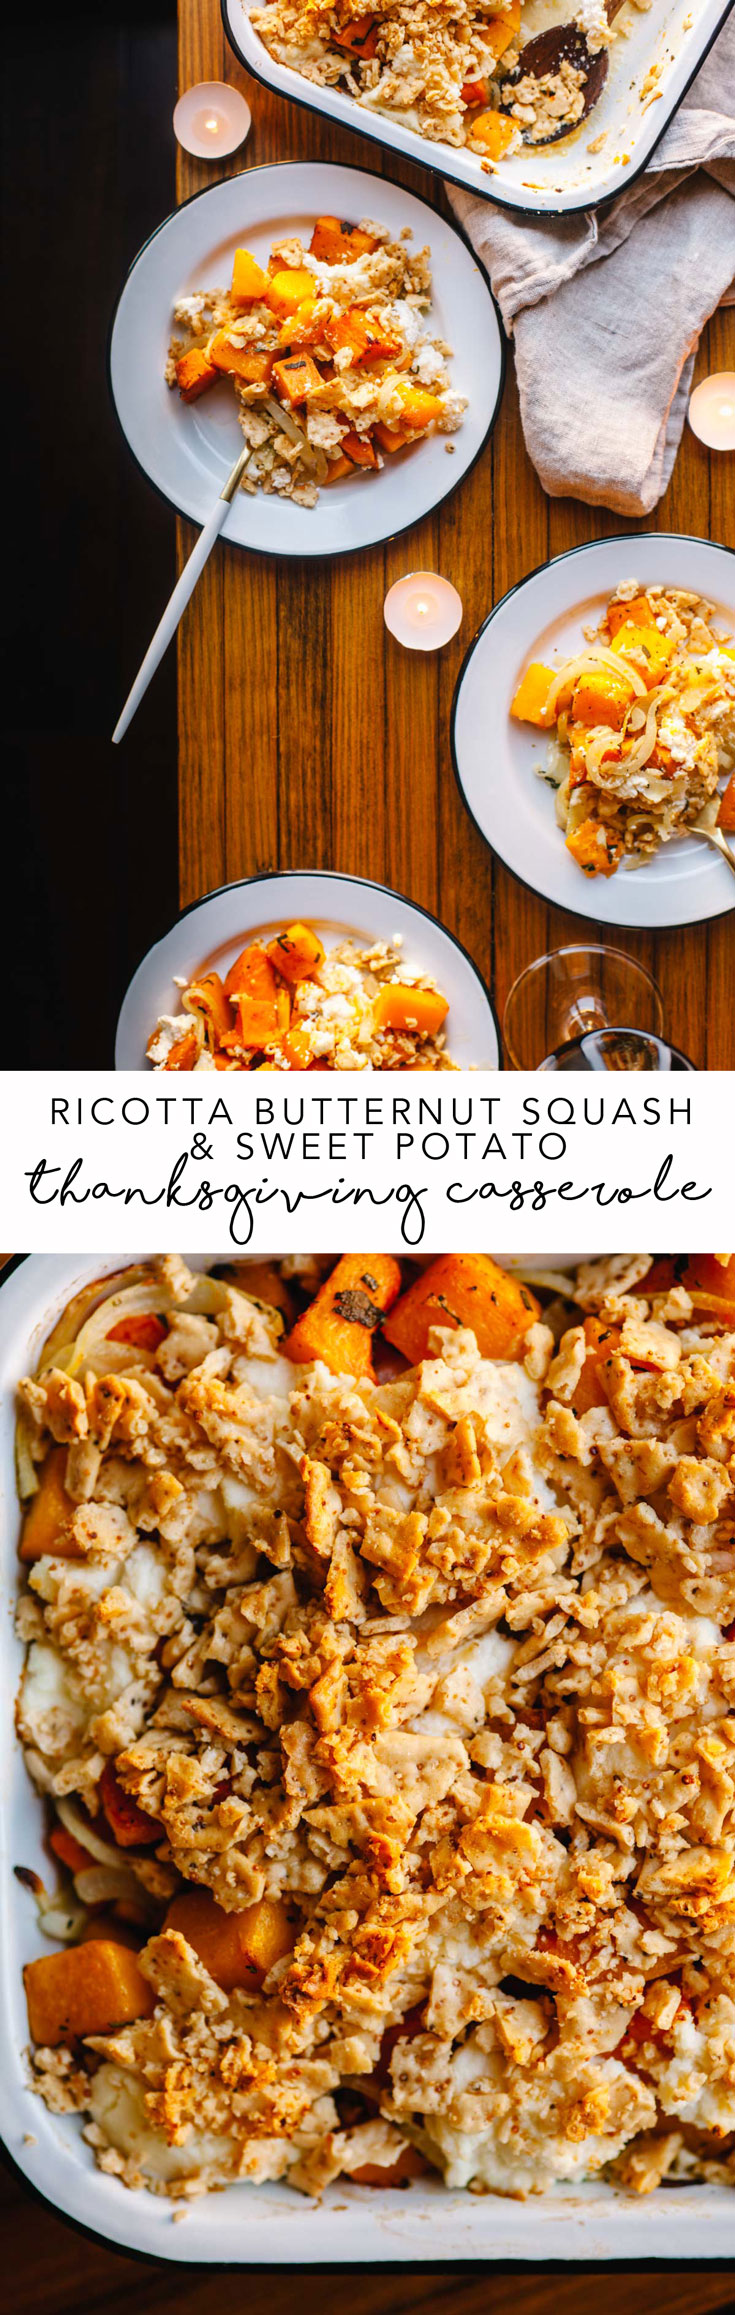 The best Thanksgiving side dish is here! It's totally vegetarian and packed with sweet potato, butternut squash, onions, ricotta, and topped with cracker crumbles. #vegetarian #casserole #Thanksgiving | Brewing Happiness